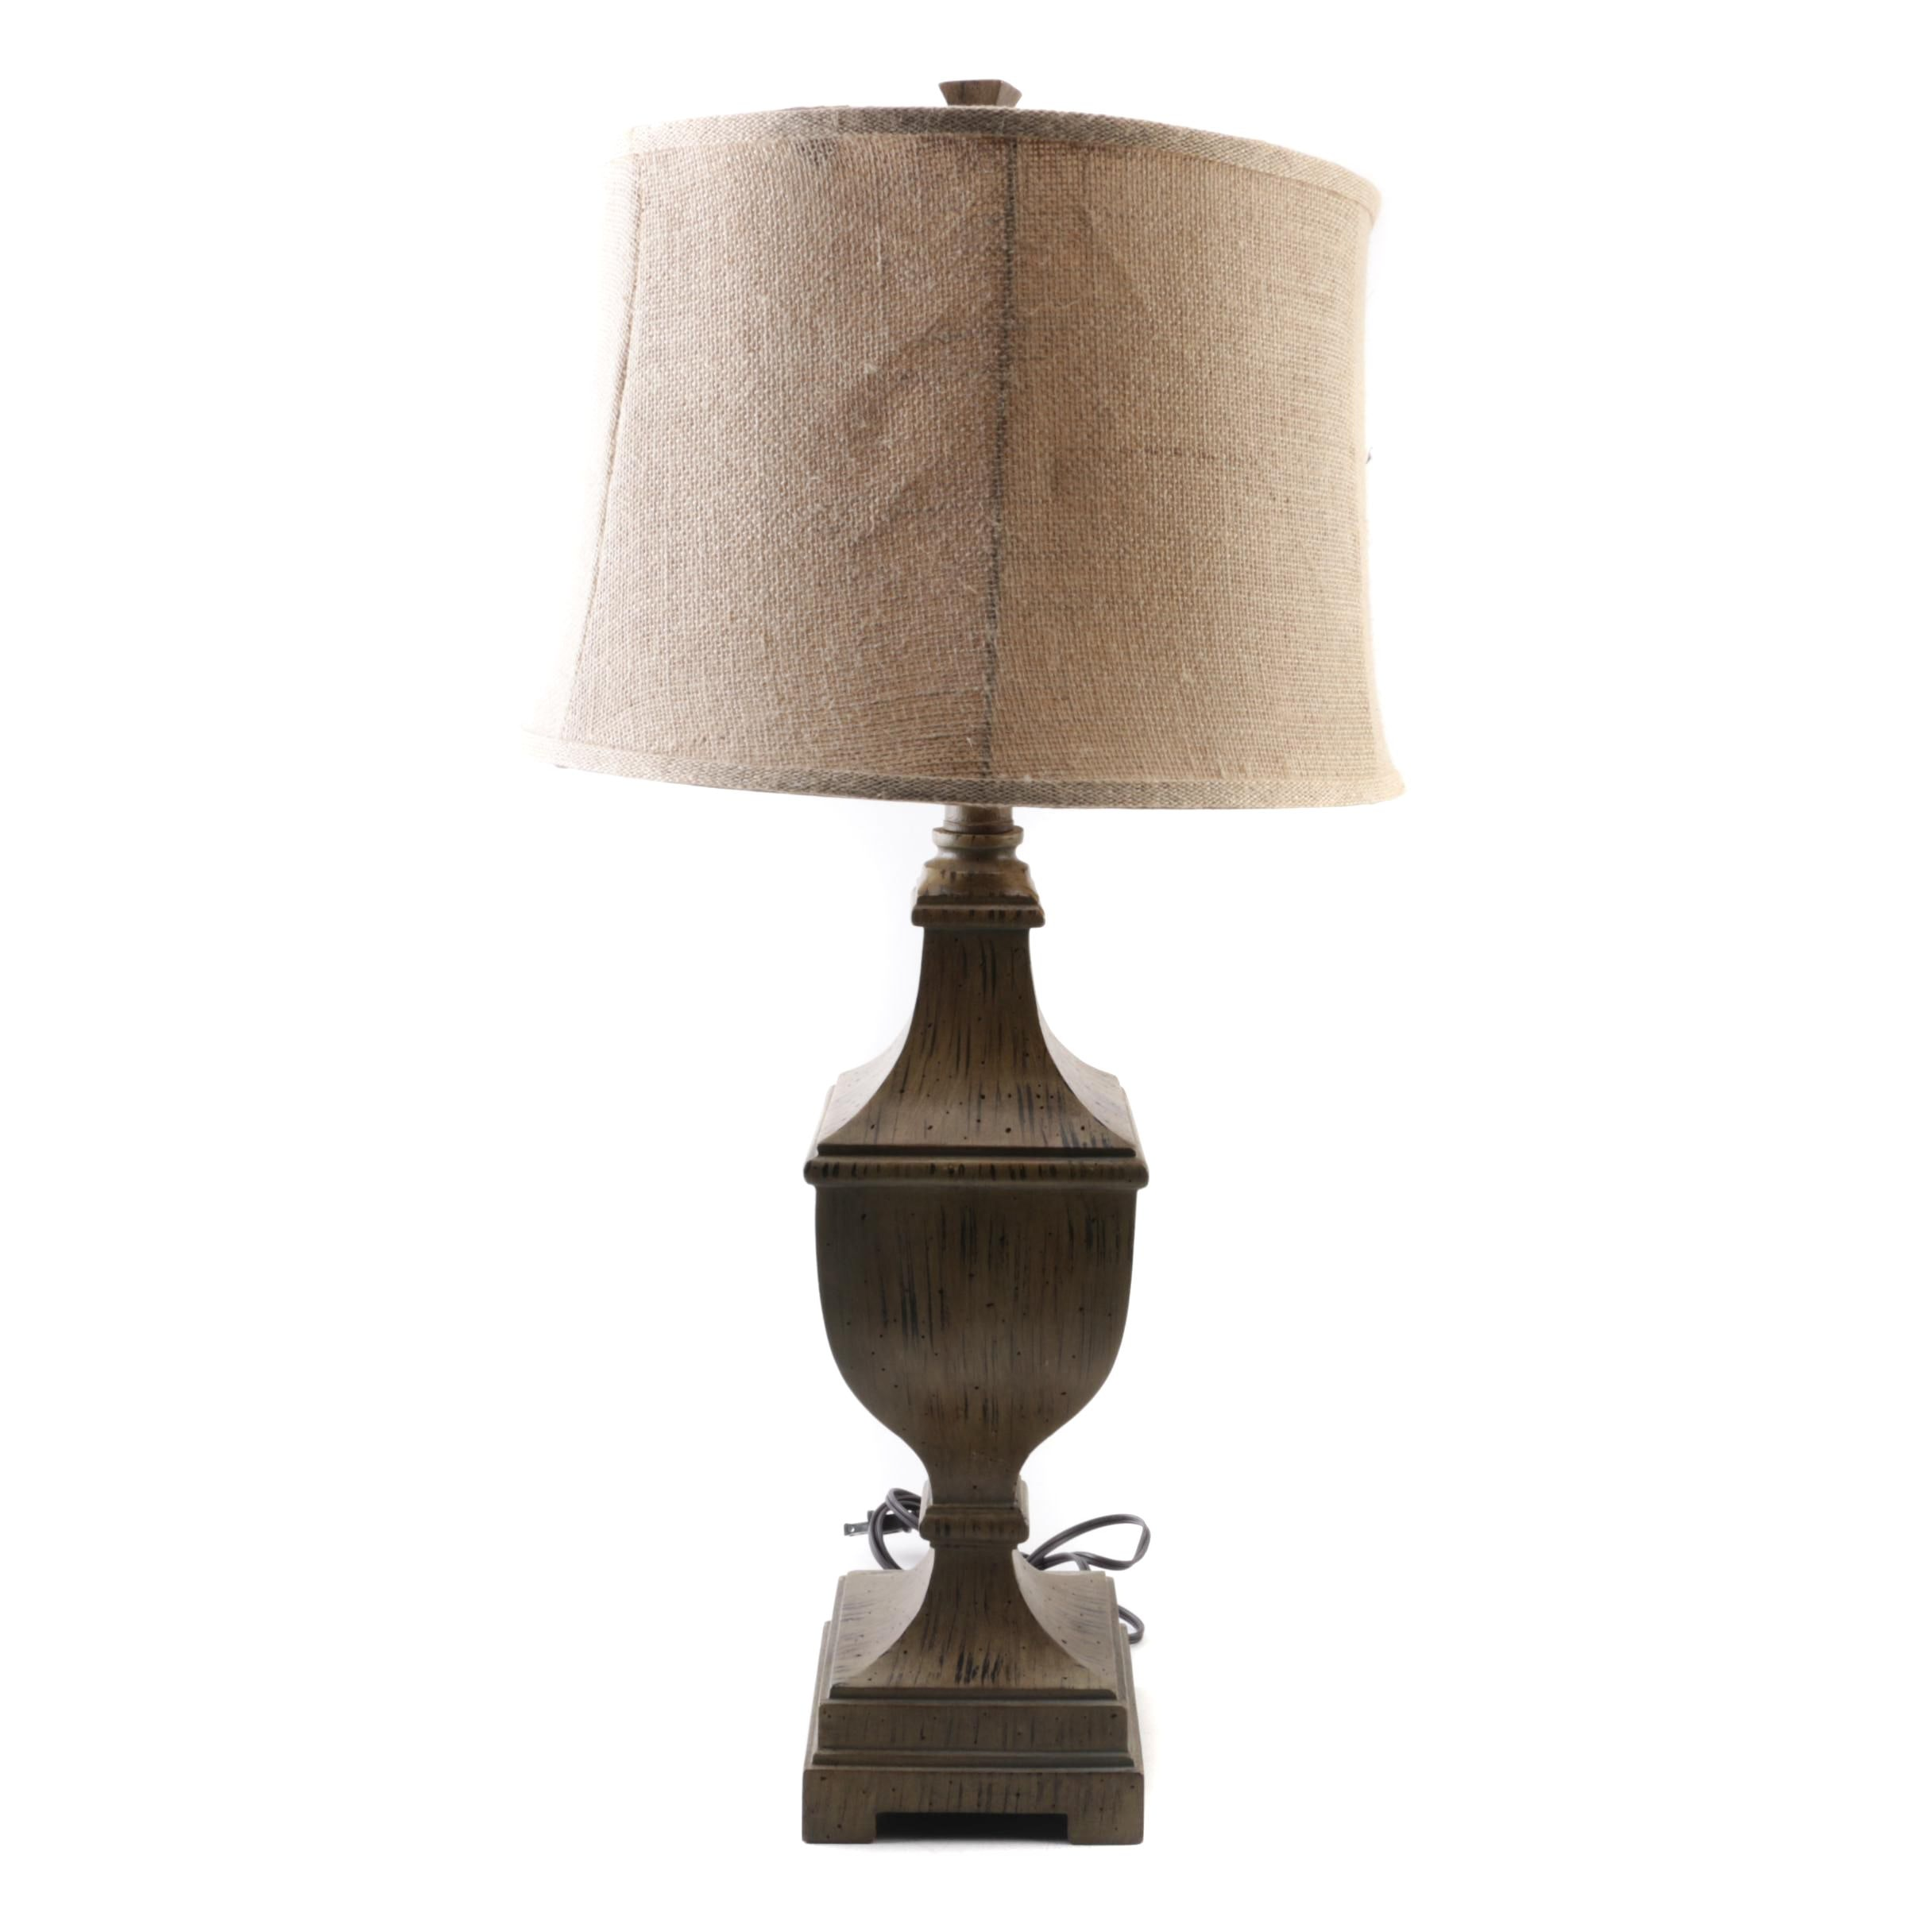 Brass Tone Wood Table Lamp